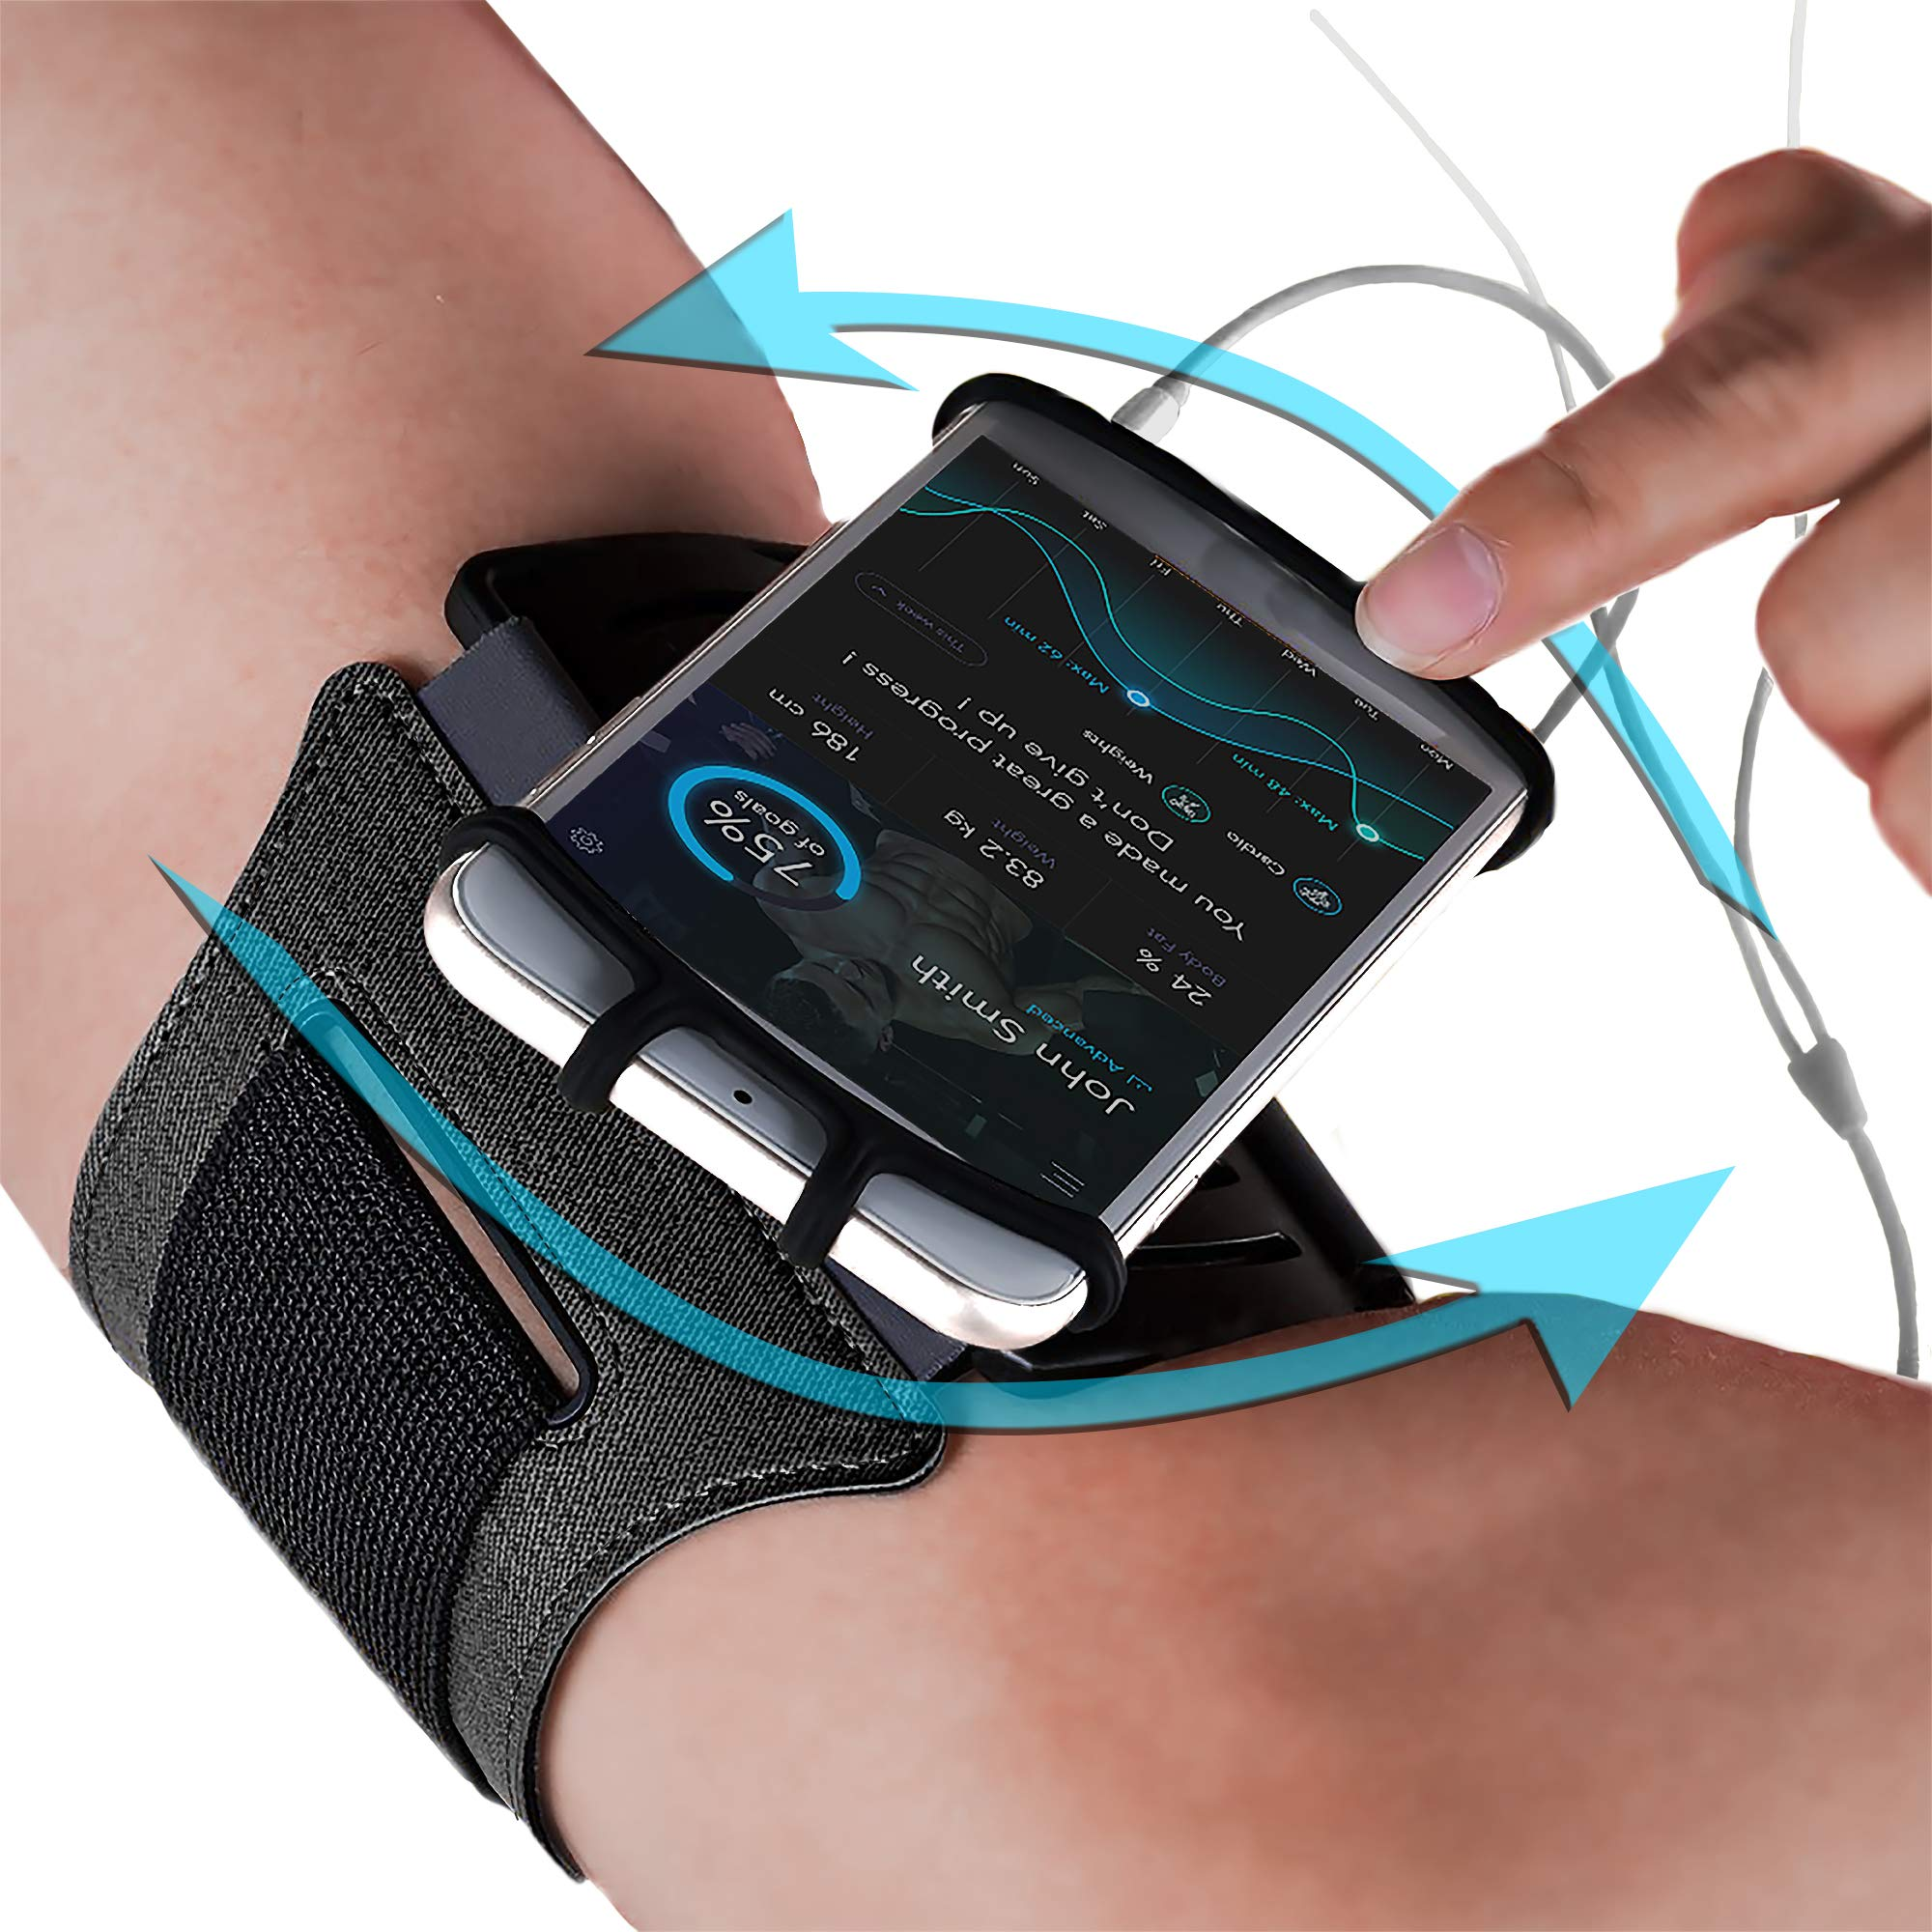 Sports Armband: Cell Phone Holder Case Arm Band Strap Pouch Mobile Exercise Running Workout For Apple iPhone 6 6S 7 8 X Plus Touch Android Samsung Galaxy S5 S6 S7 S8 S9 Note 8 5 Edge Pixel (Rotatable) by E Tronic Edge